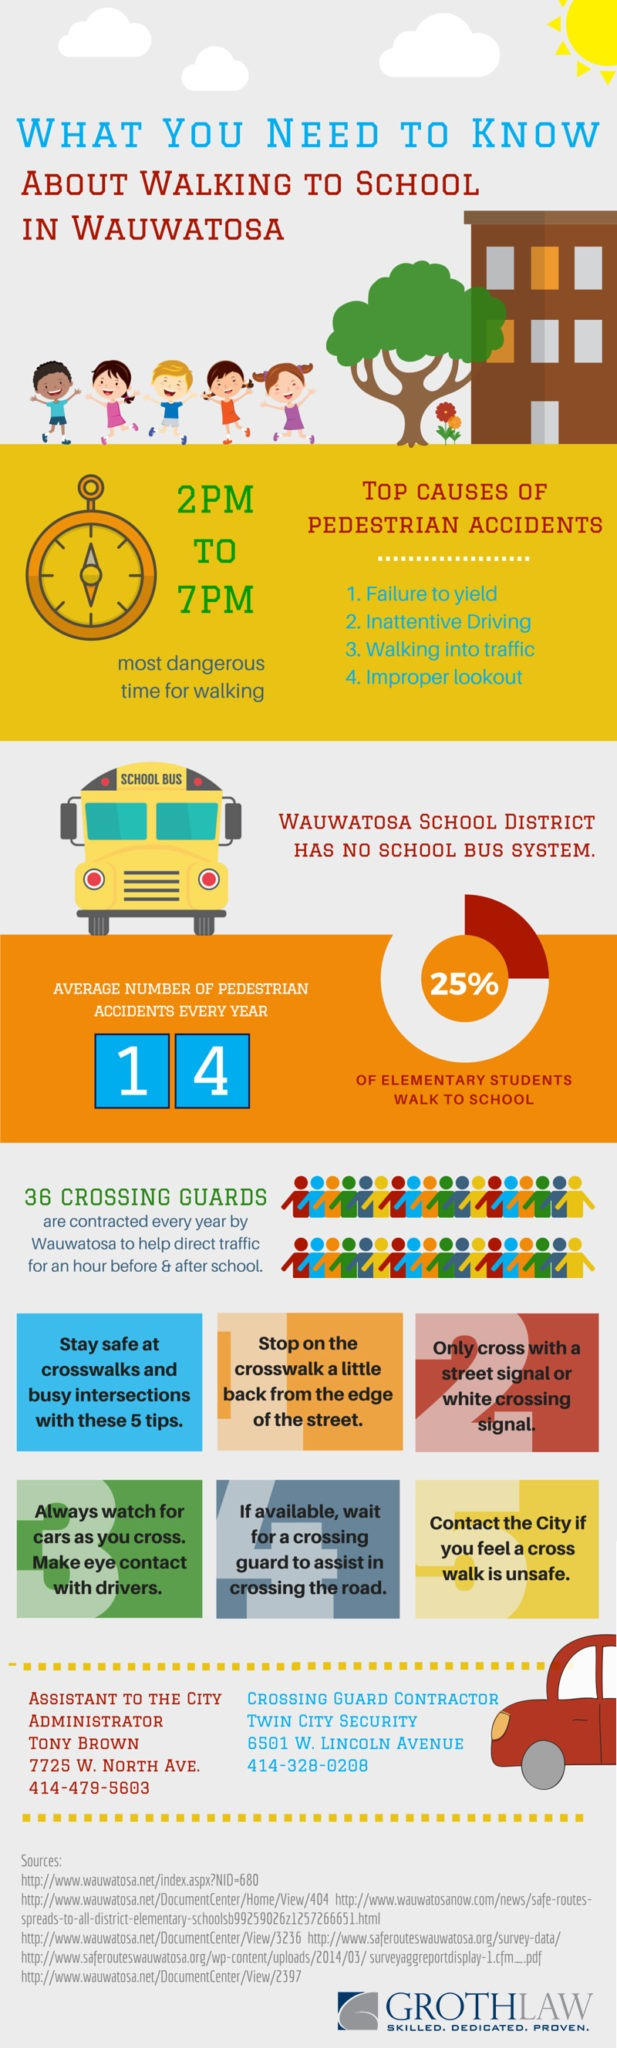 What You Need to Know About Walking to School in Wauwatosa Infographic